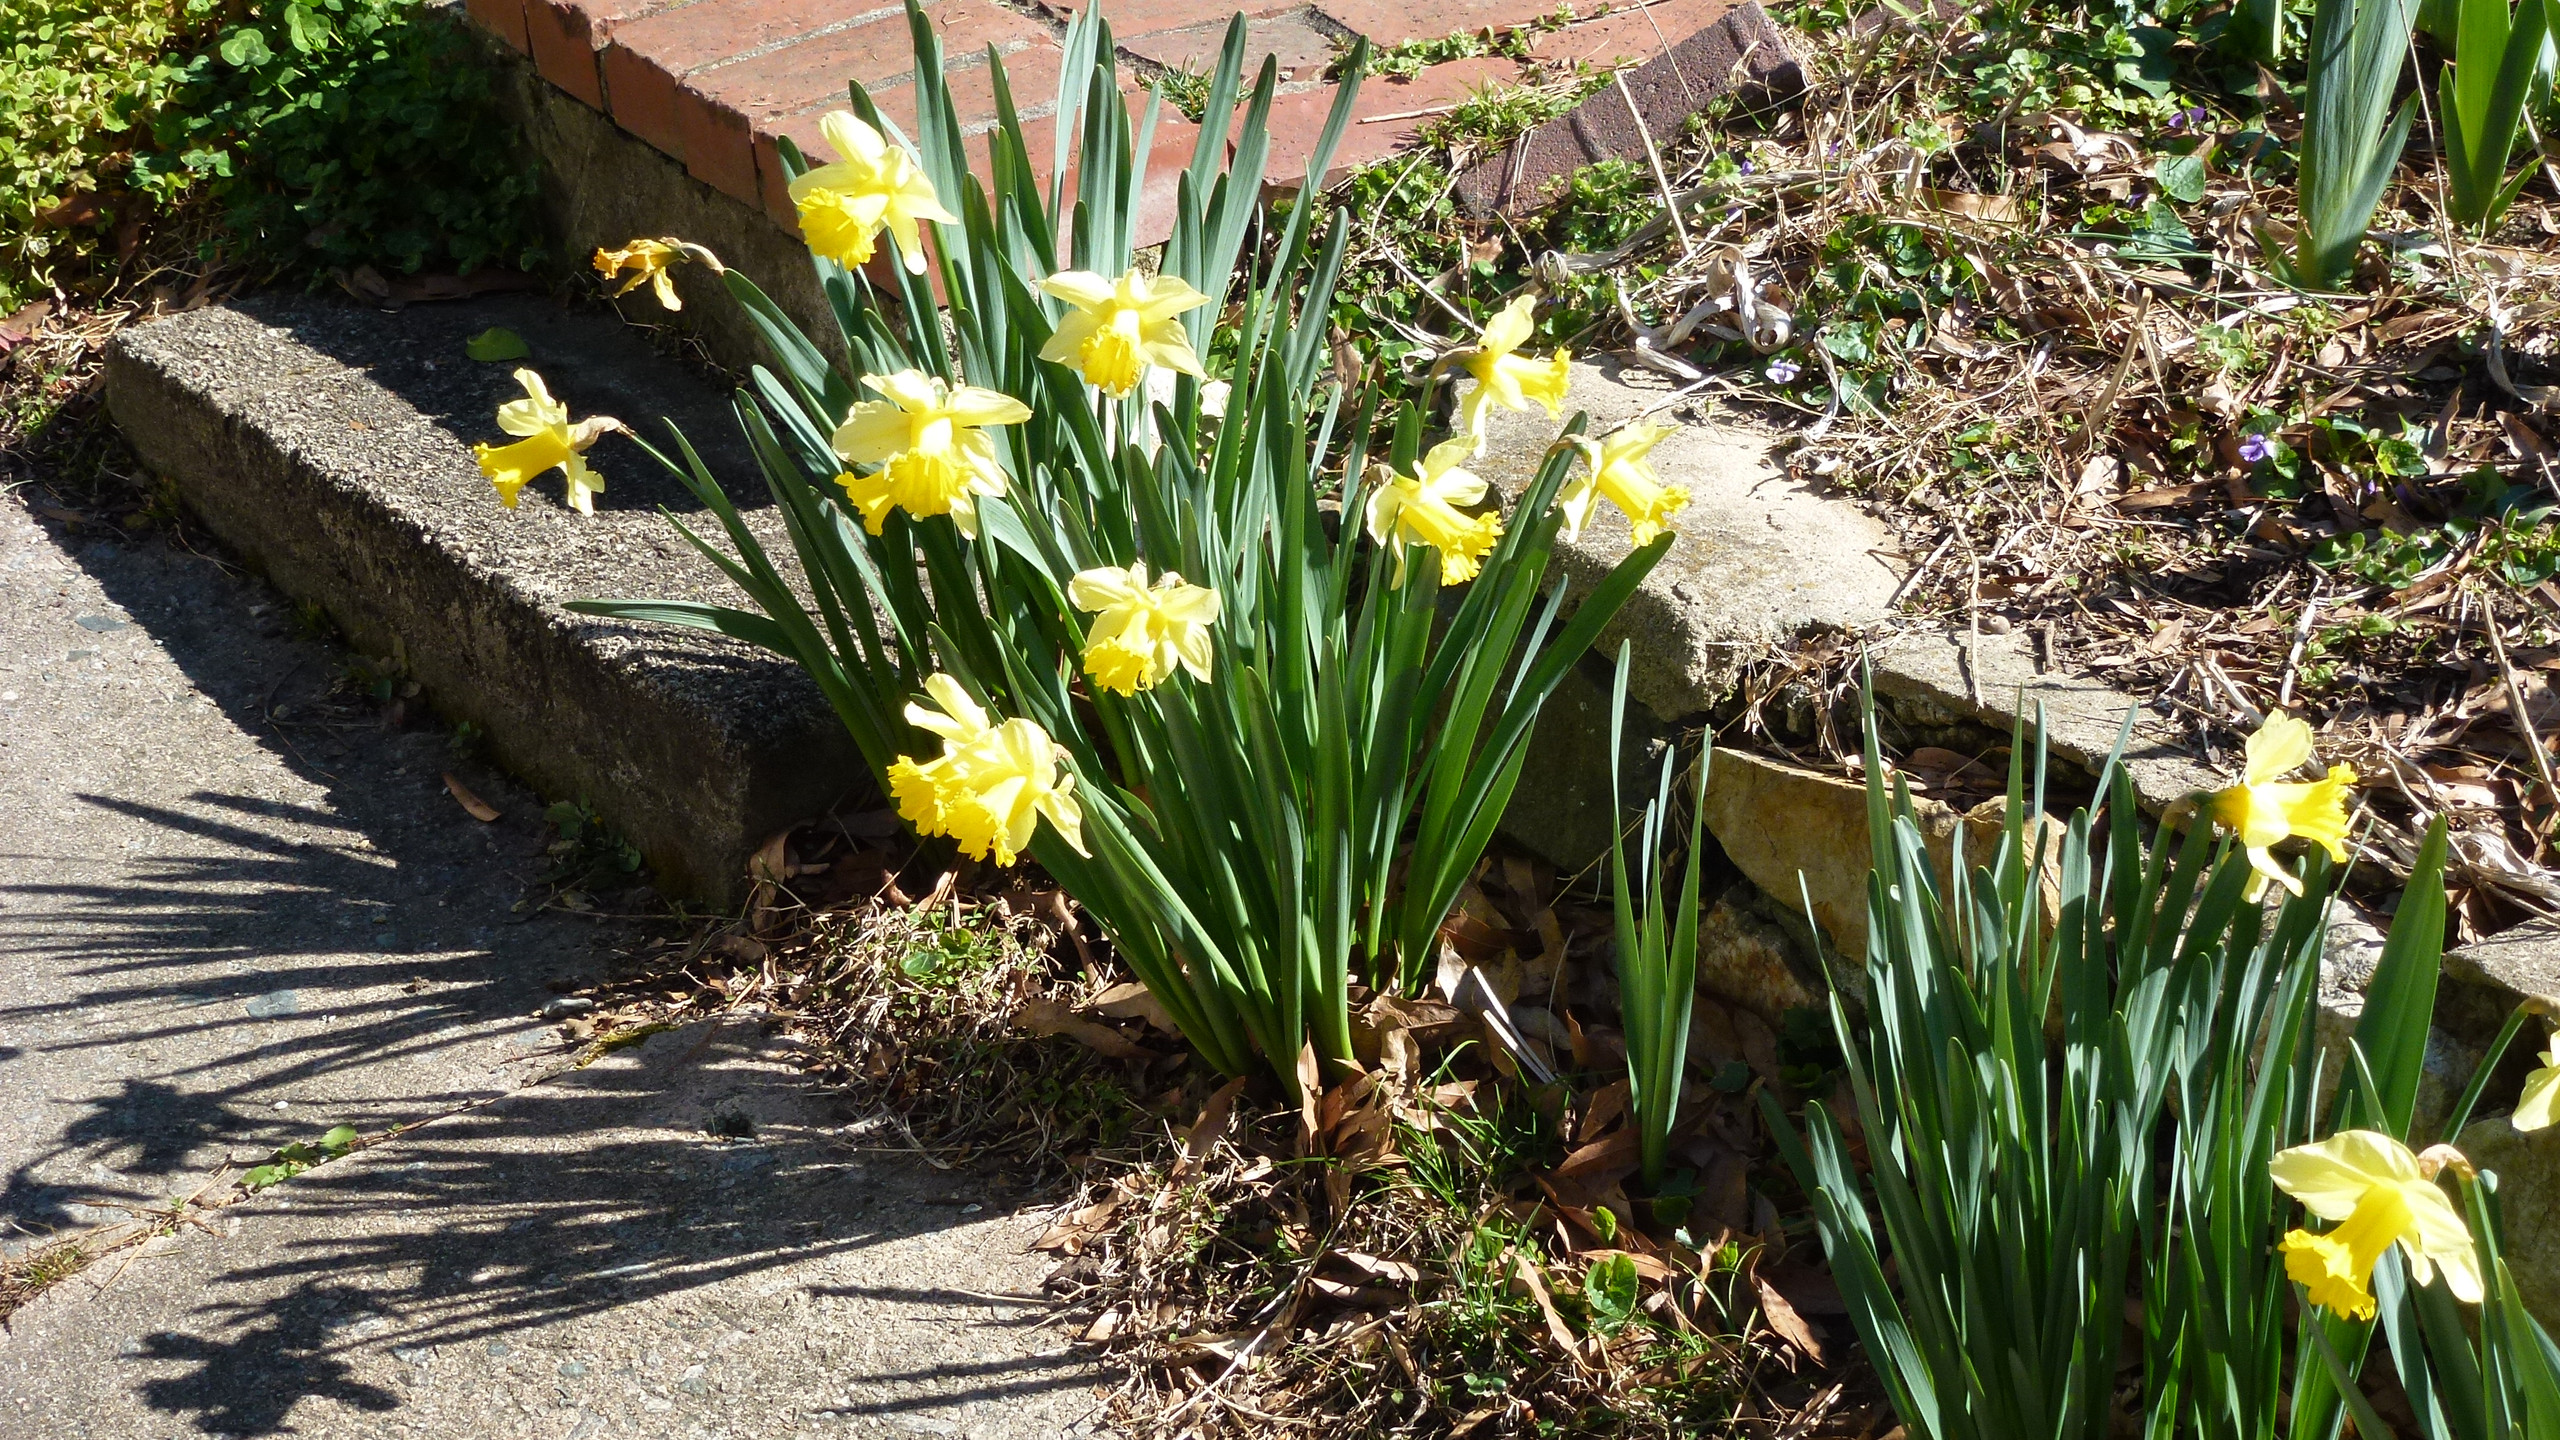 Daffodils unknown-  at least  20 years old